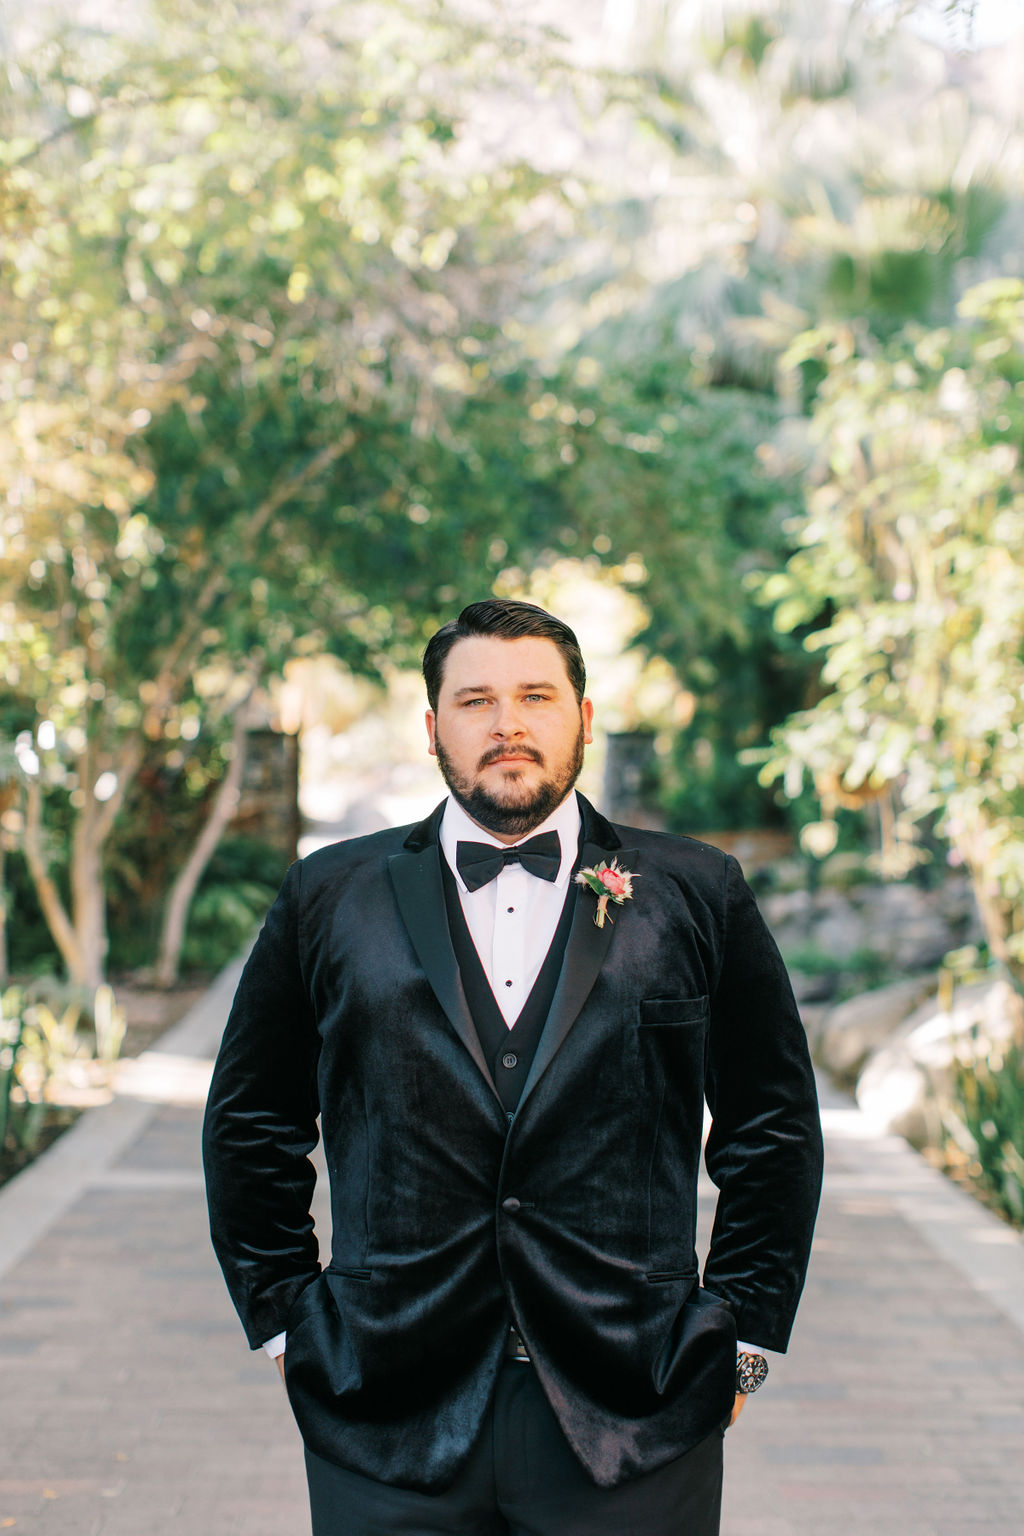 meagan robert wedding groom in black suit